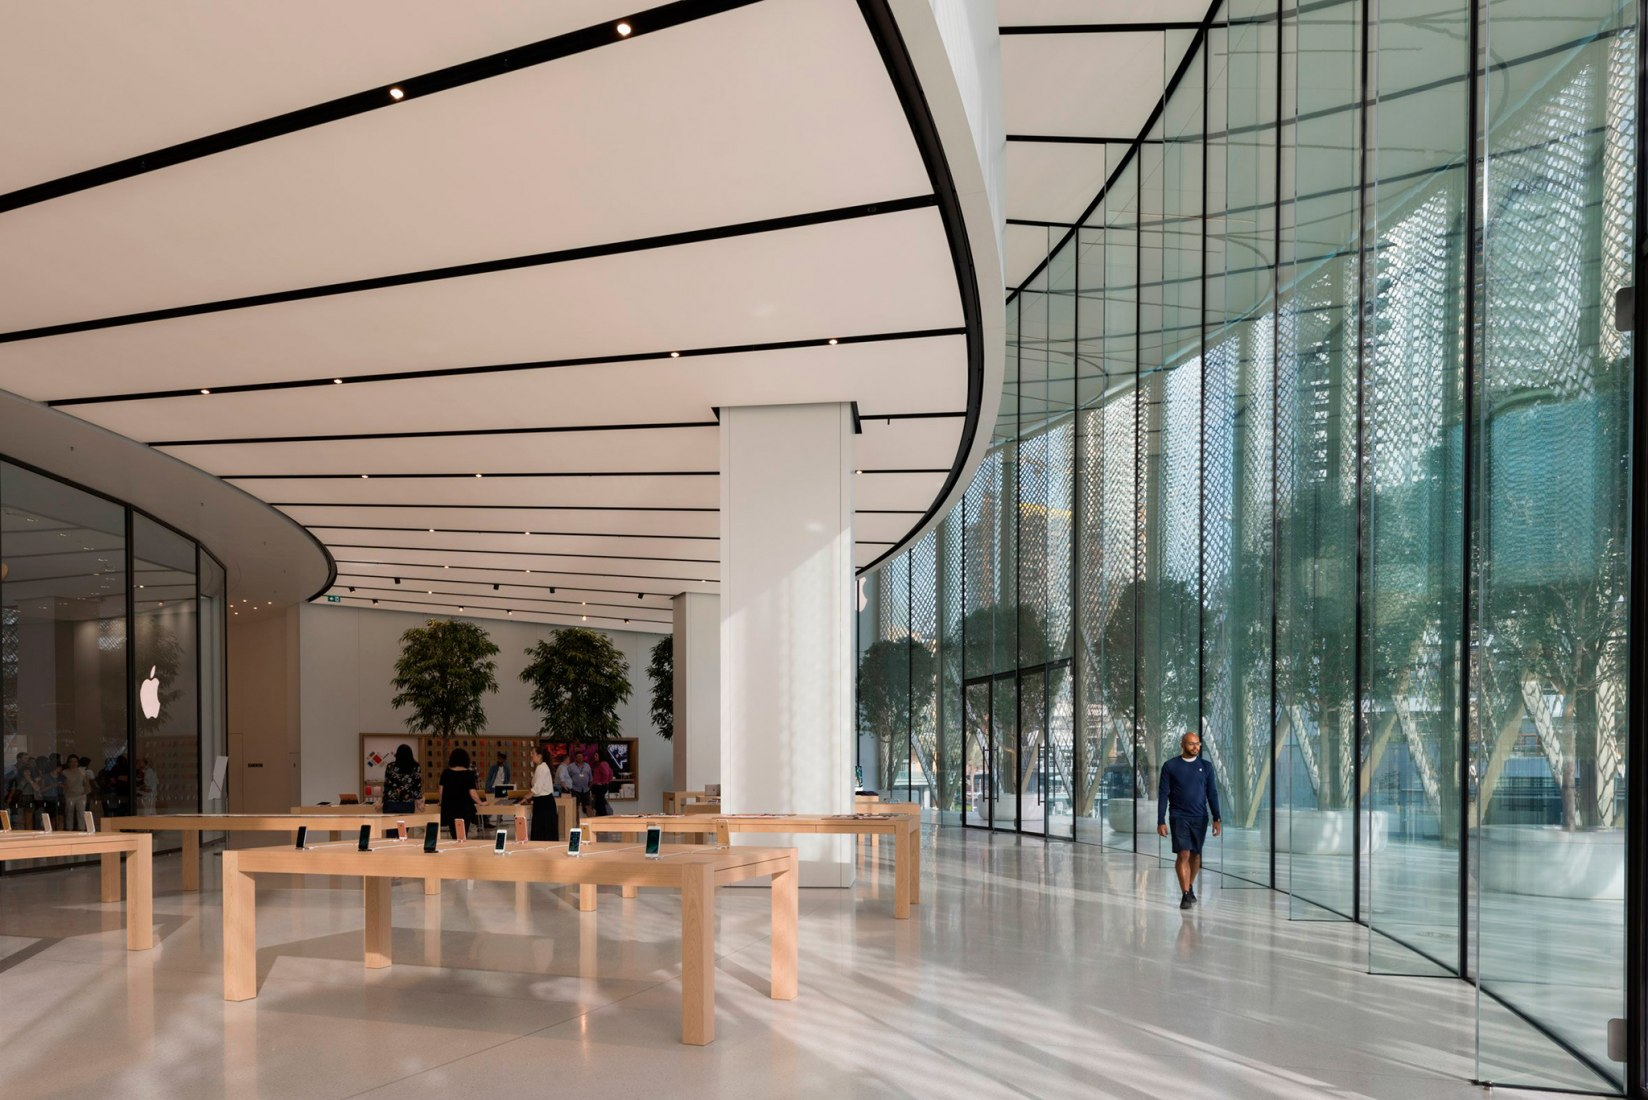 Imagen interior. Apple Dubai Mall por Foster + Partners. Fotografía © Nigel Young, Foster + Partners.